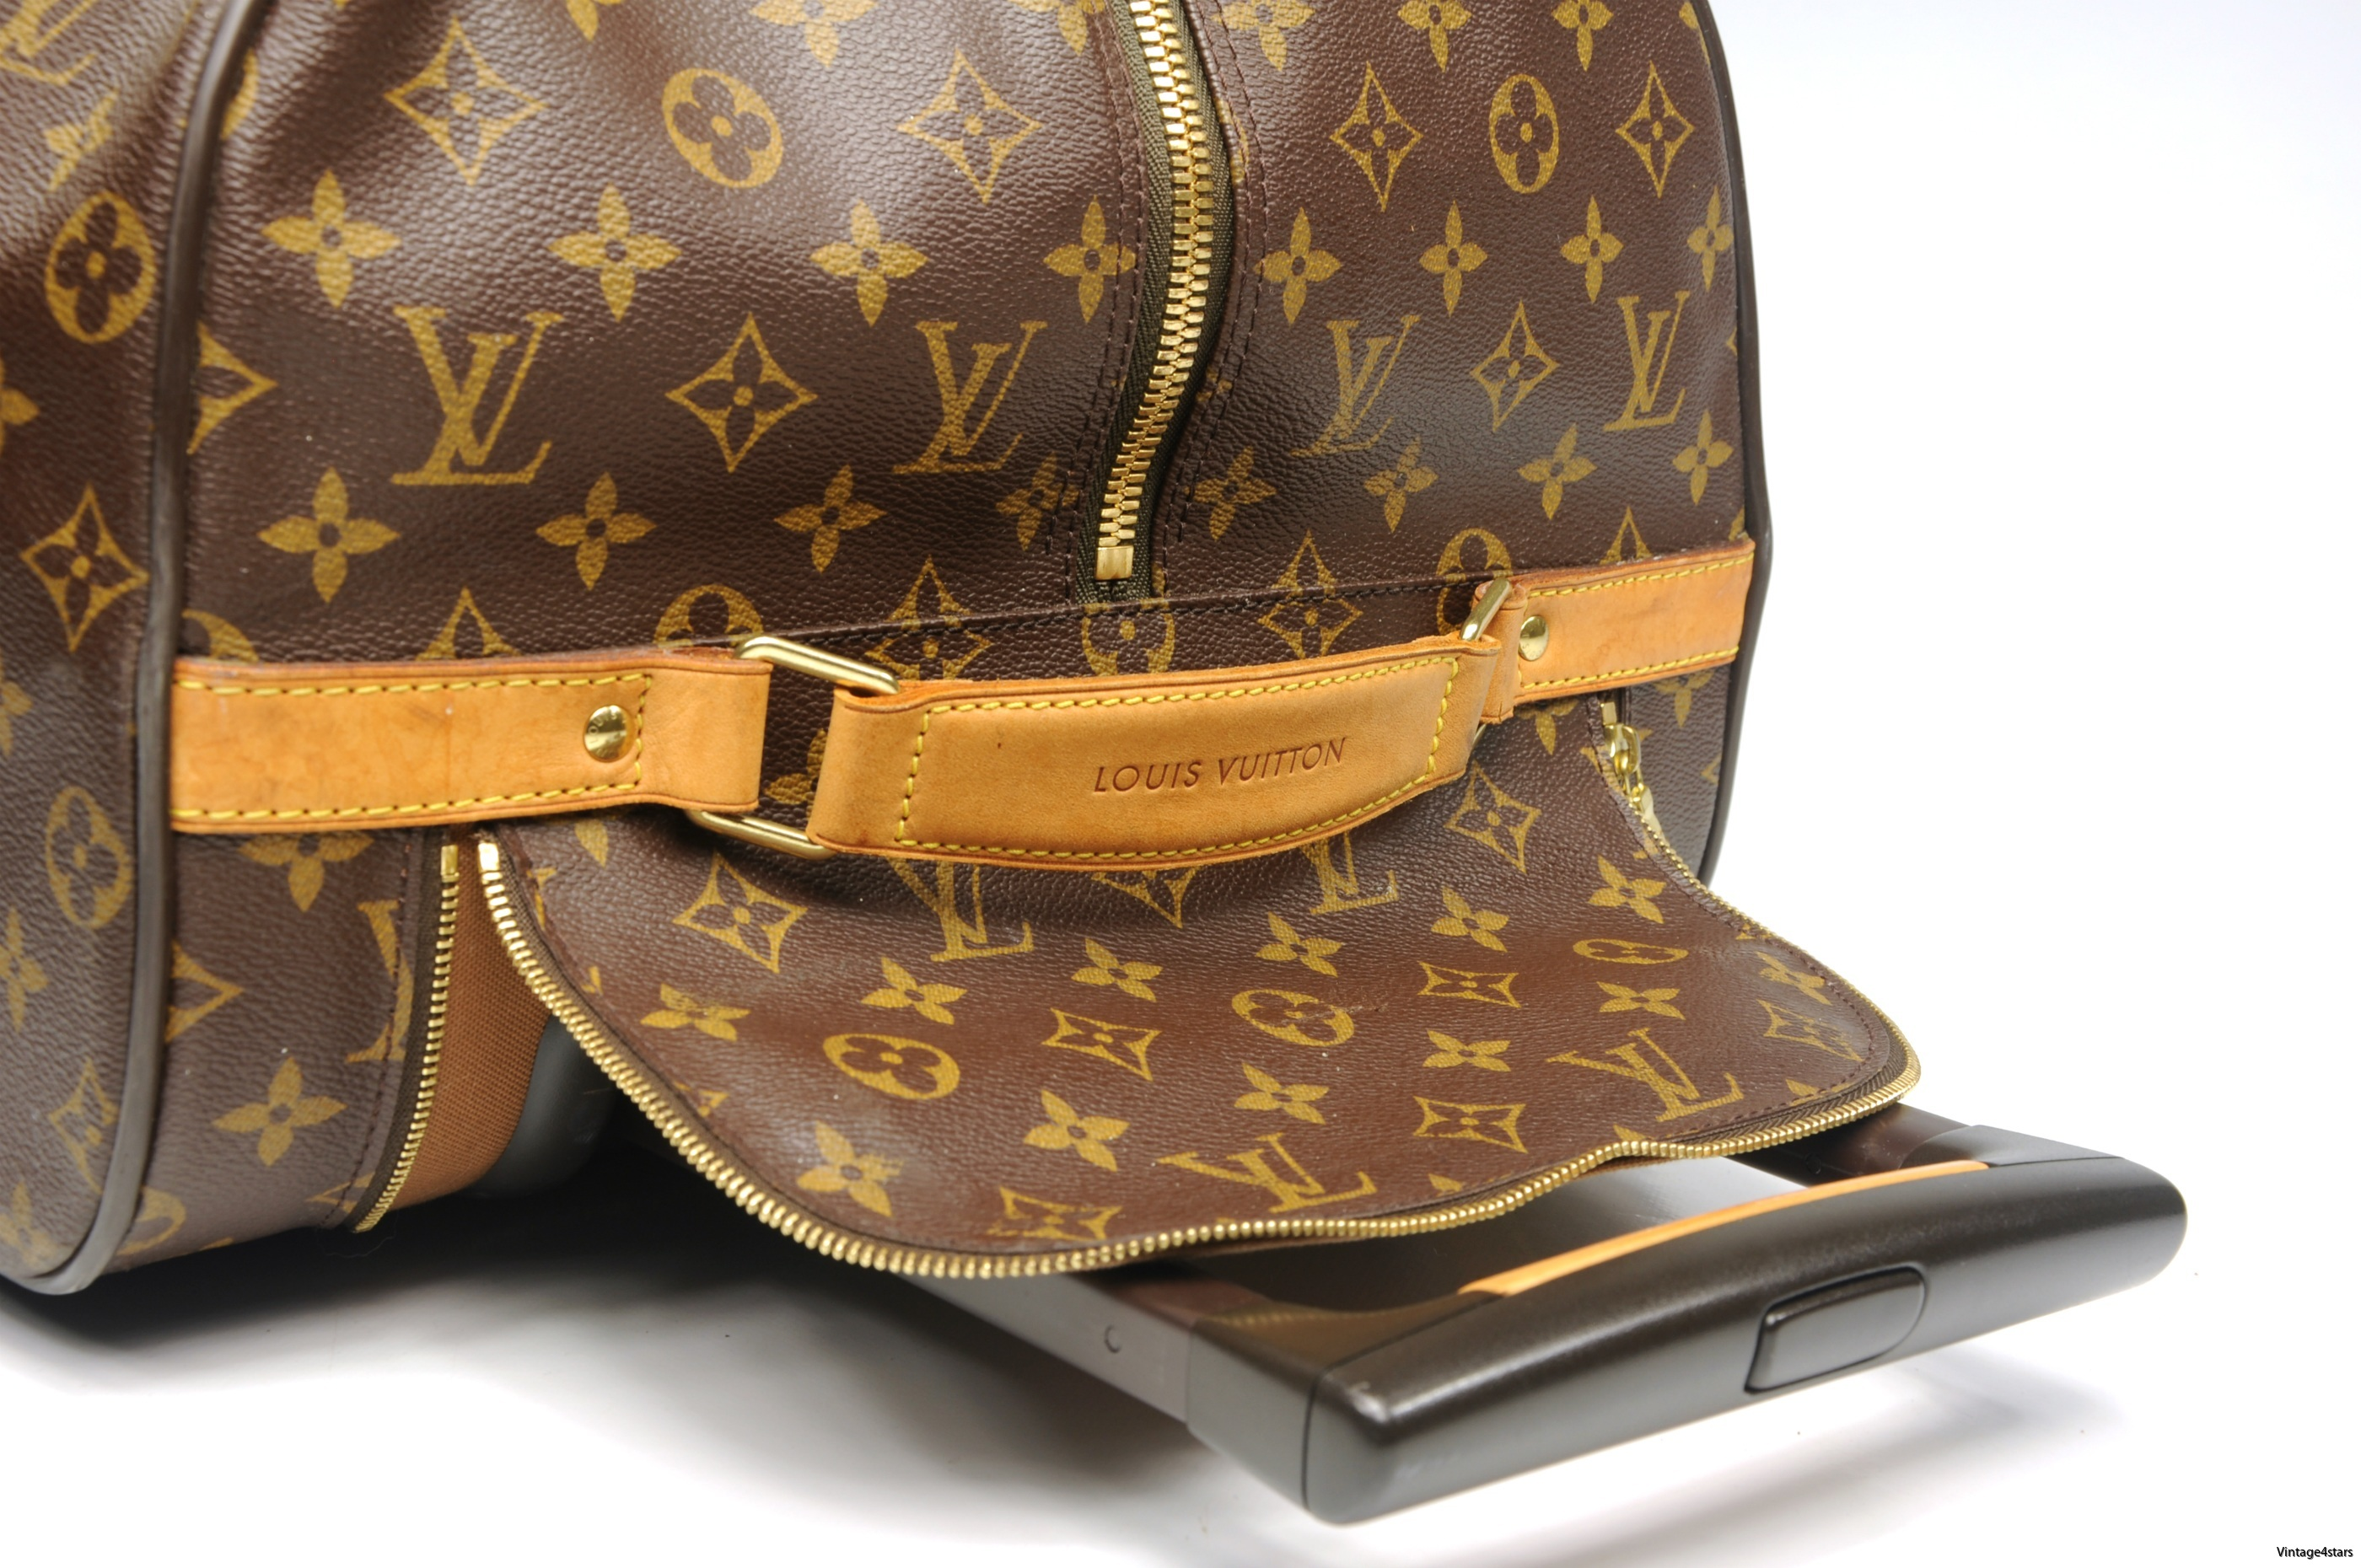 Louis Vuitton Eole 60 Monogram 3